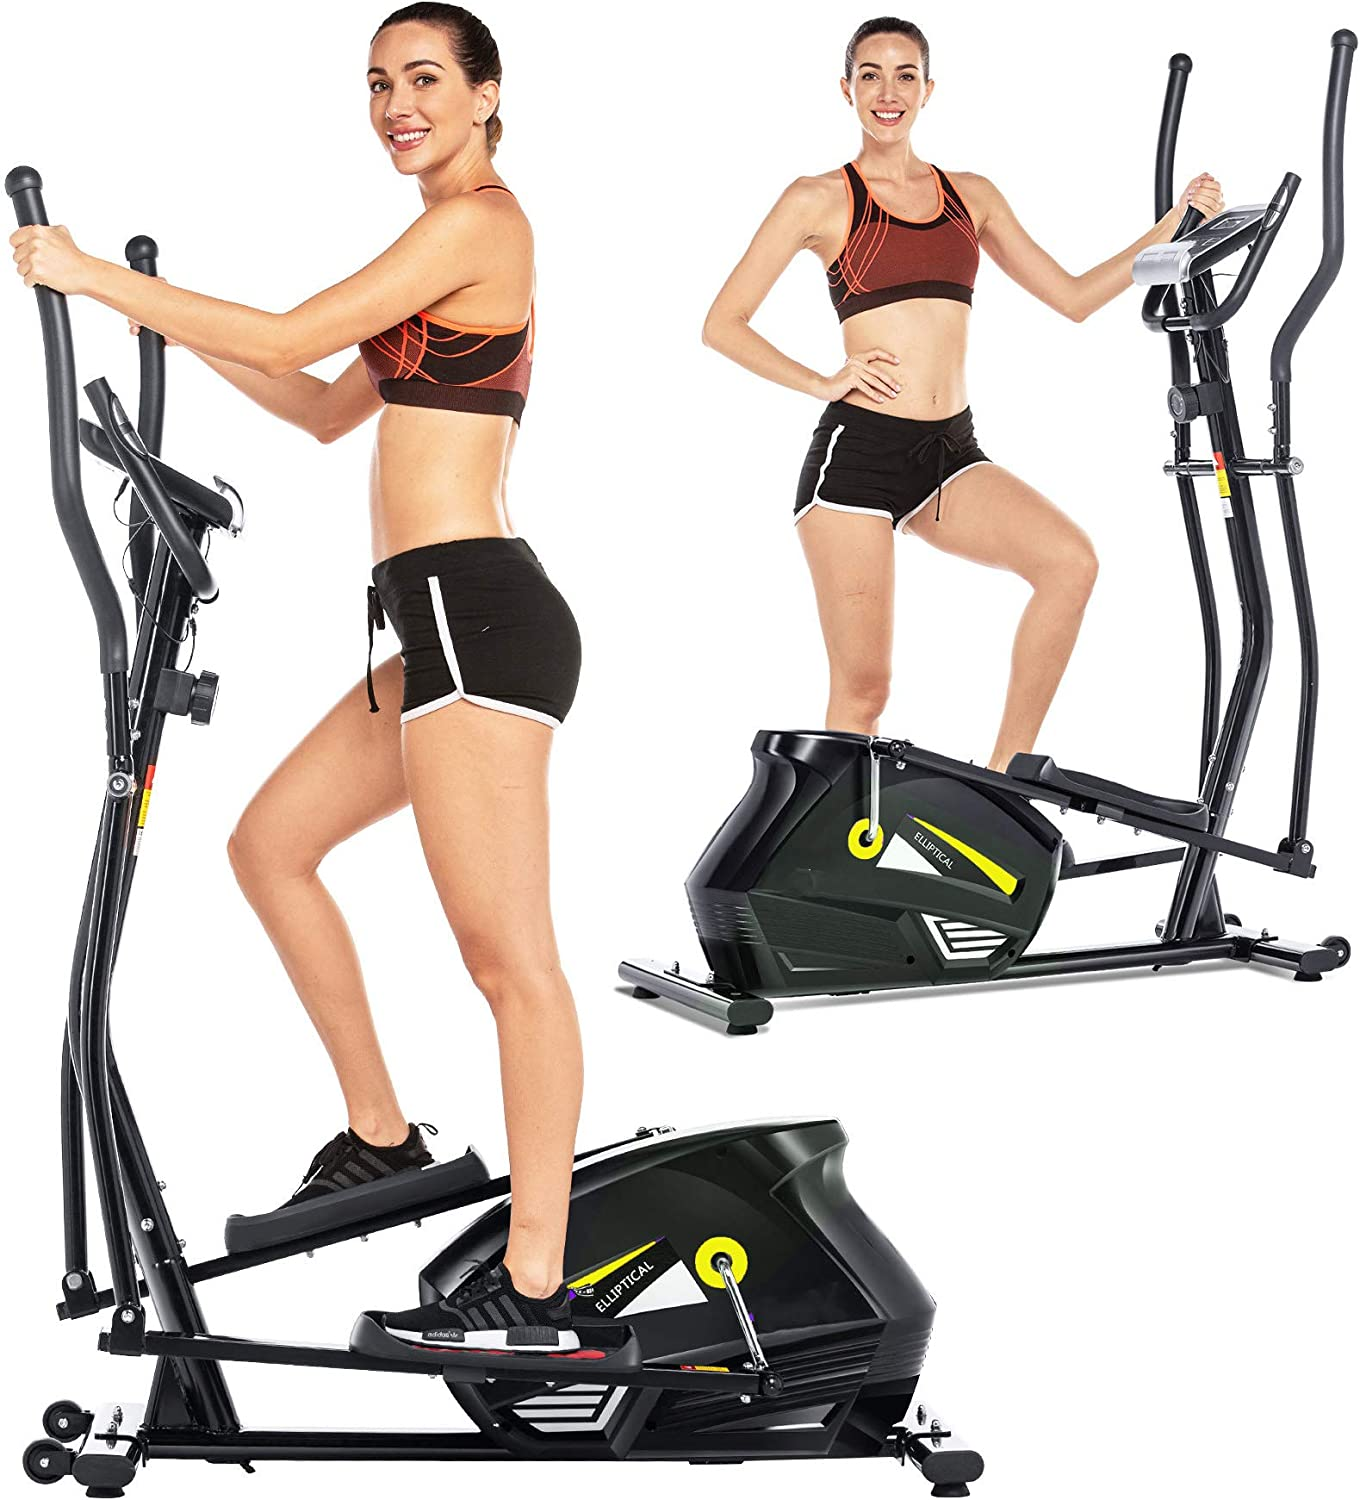 ANCHEER Folding Treadmill, Electric Motorized Treadmill with LCD Monitor, Walking Jogging Running Machine Trainer Equipment for Home & Office Workout Indoor Exercise Machine (Orange)